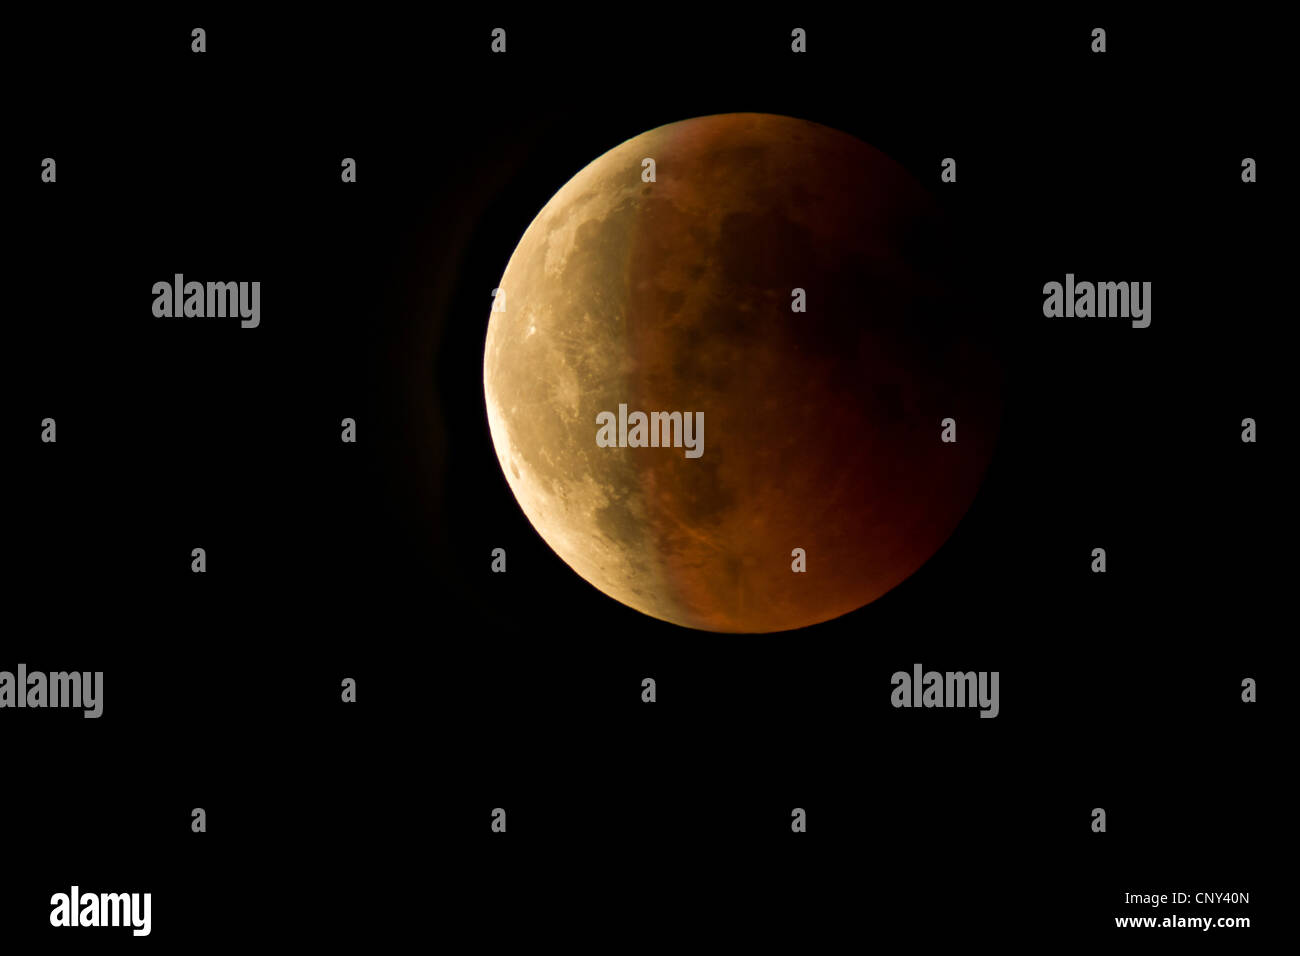 moon eclipse with the lunar globe shimmering redishly in a cloudless sky, Germany, Bavaria - Stock Image